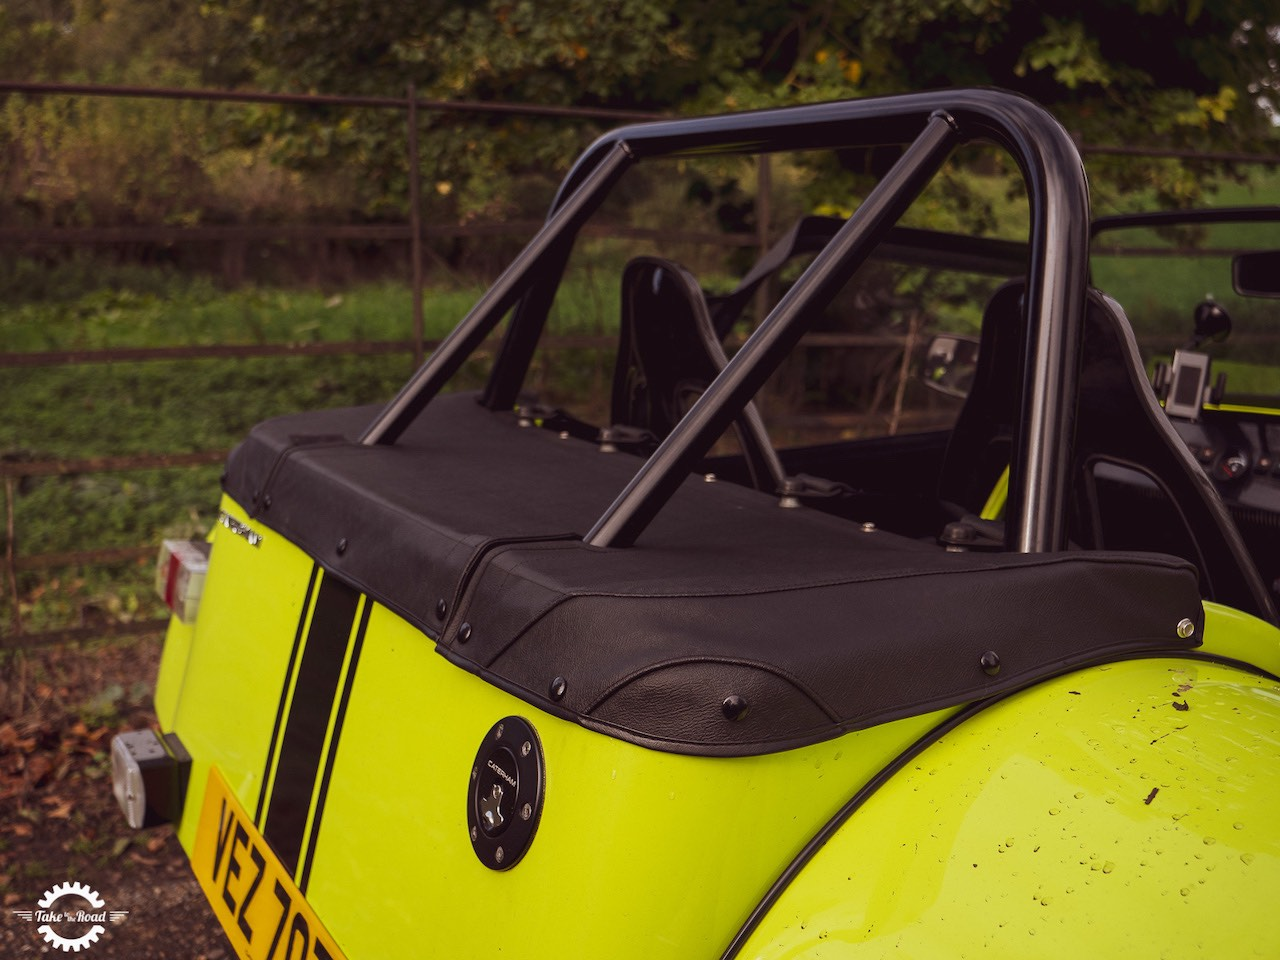 Hands on with the Caterham 270R